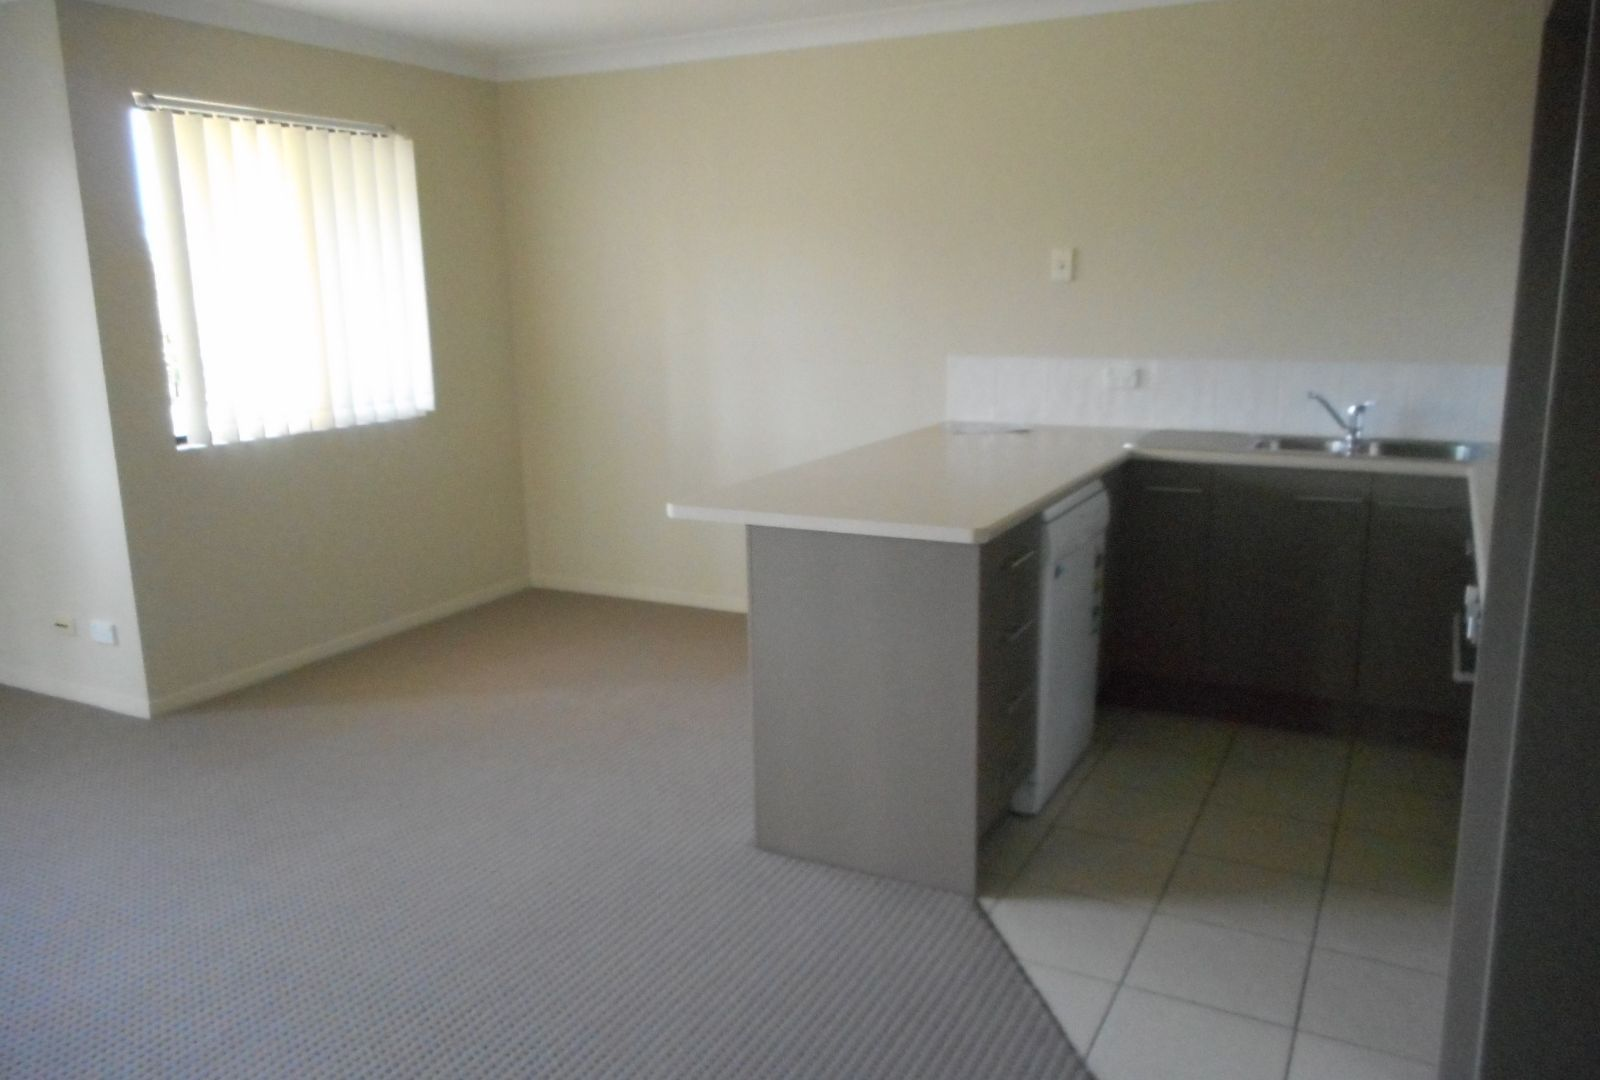 14/14 Syria St, Beenleigh QLD 4207, Image 2